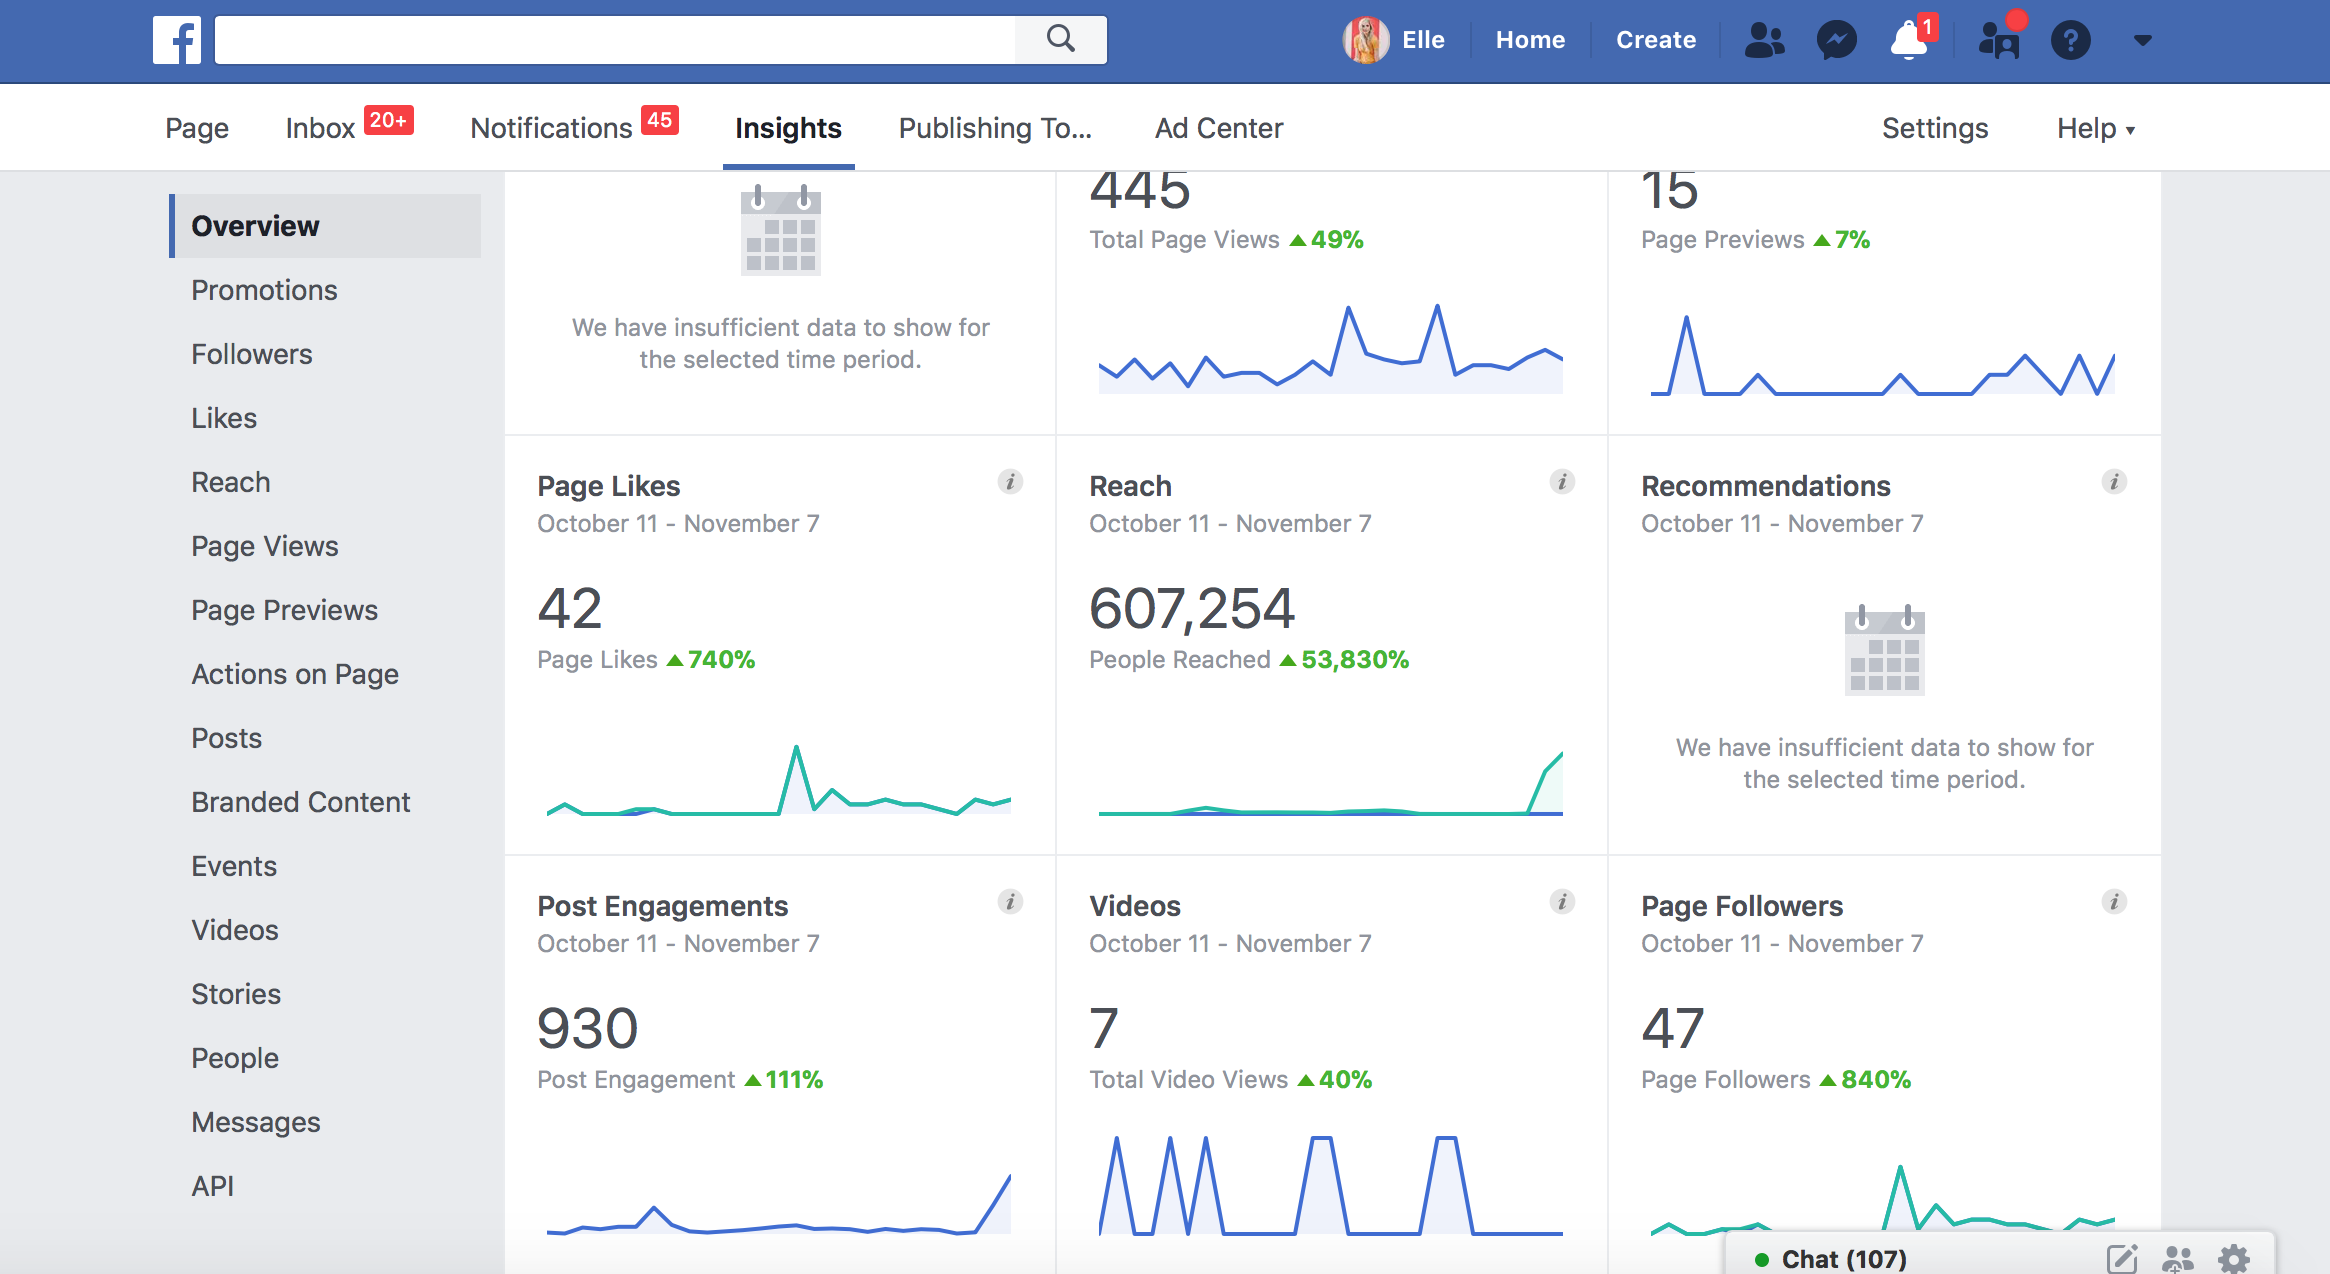 social-media-management-manager-facebook-30dayanalytics-instagram-outsourcing-results-insights-growth-02